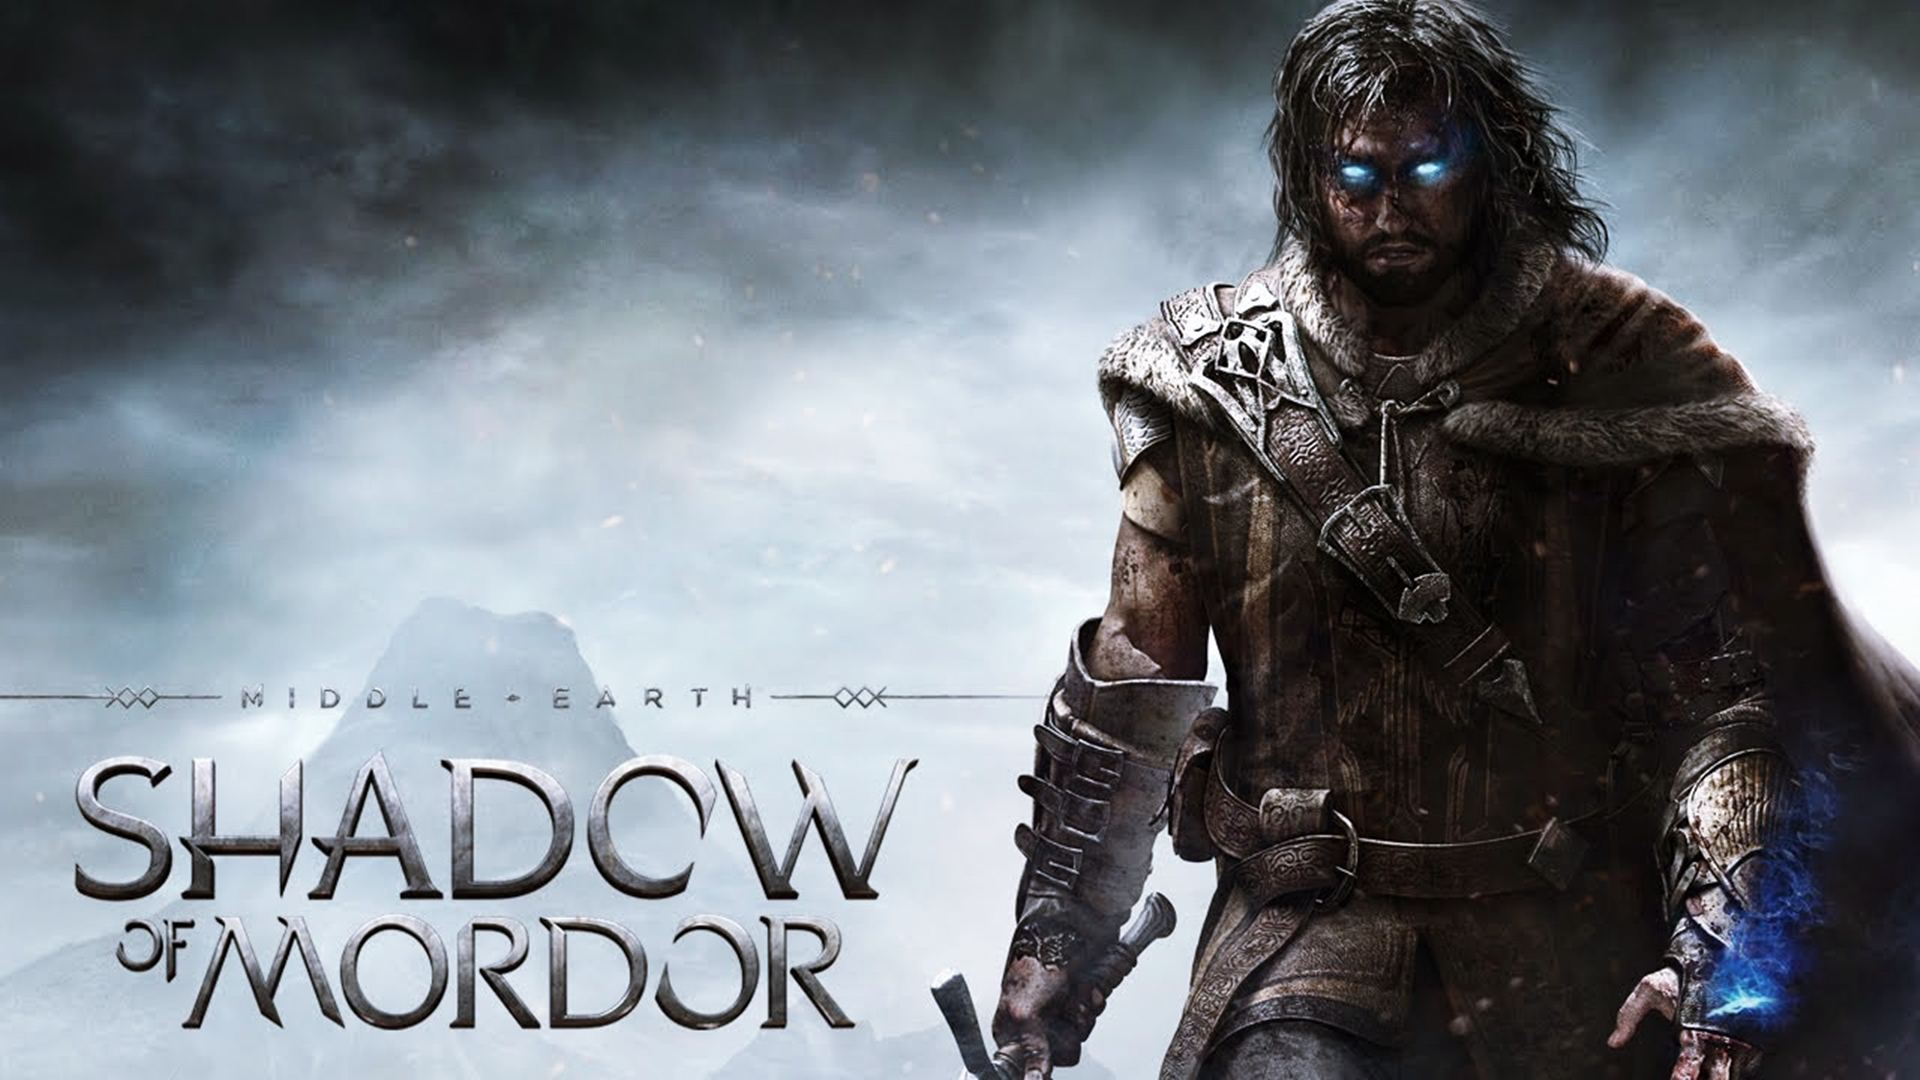 Middle earth Shadow of Mordor Game Giveaway